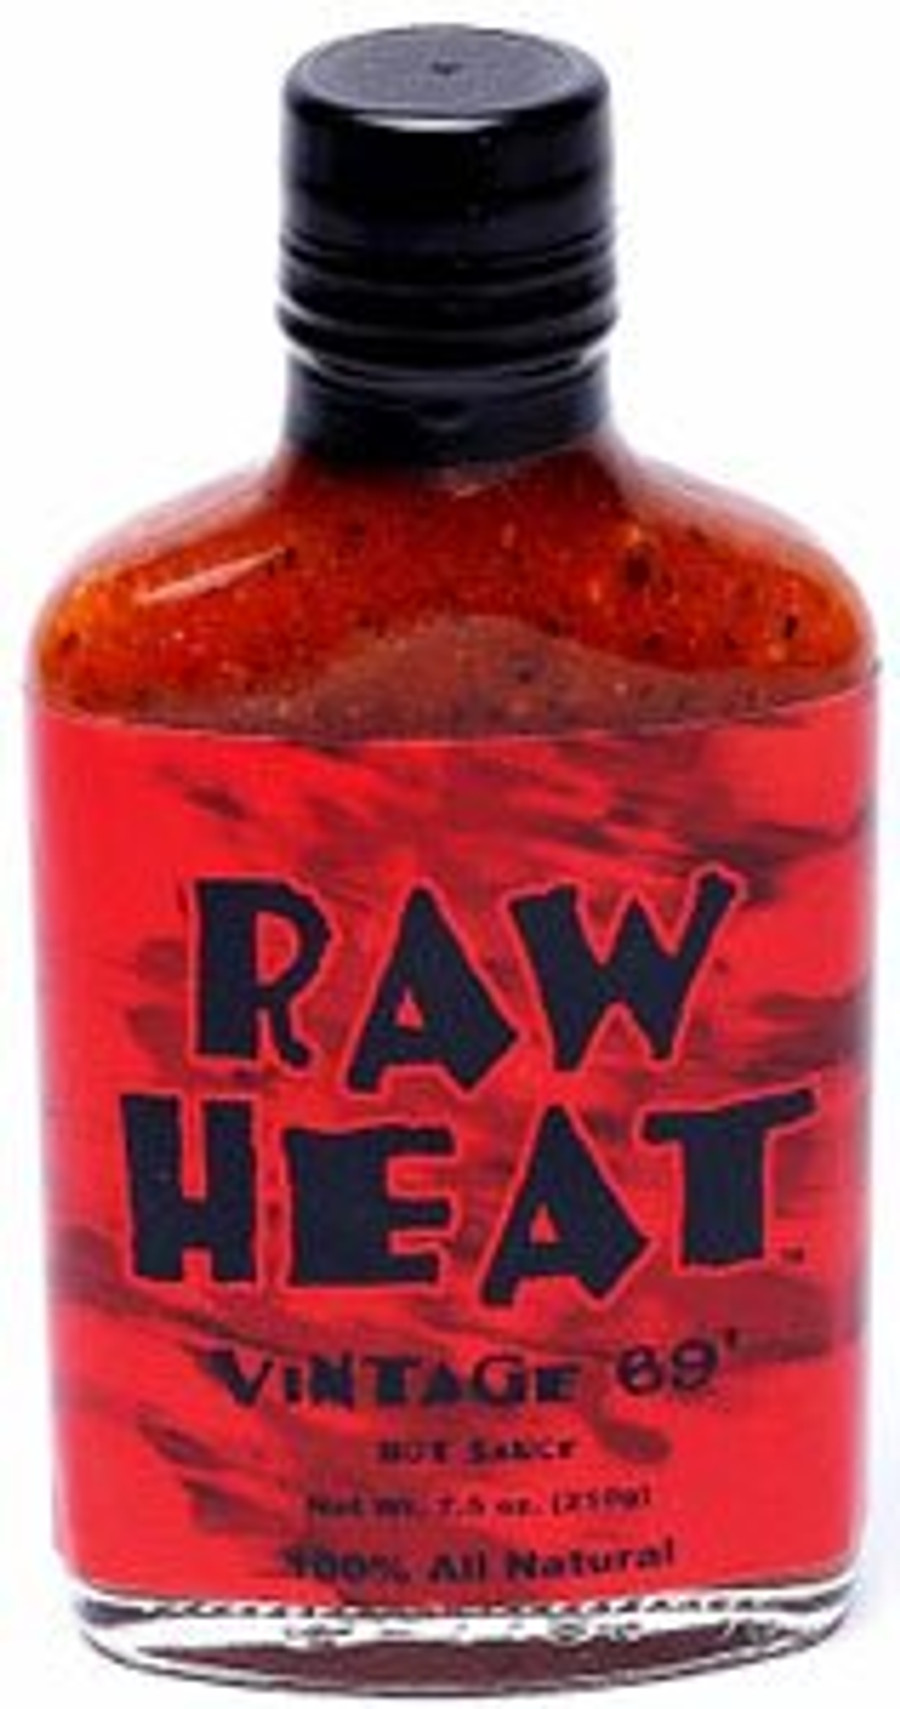 Raw Heat Vintage 69 PepperExplosion.com